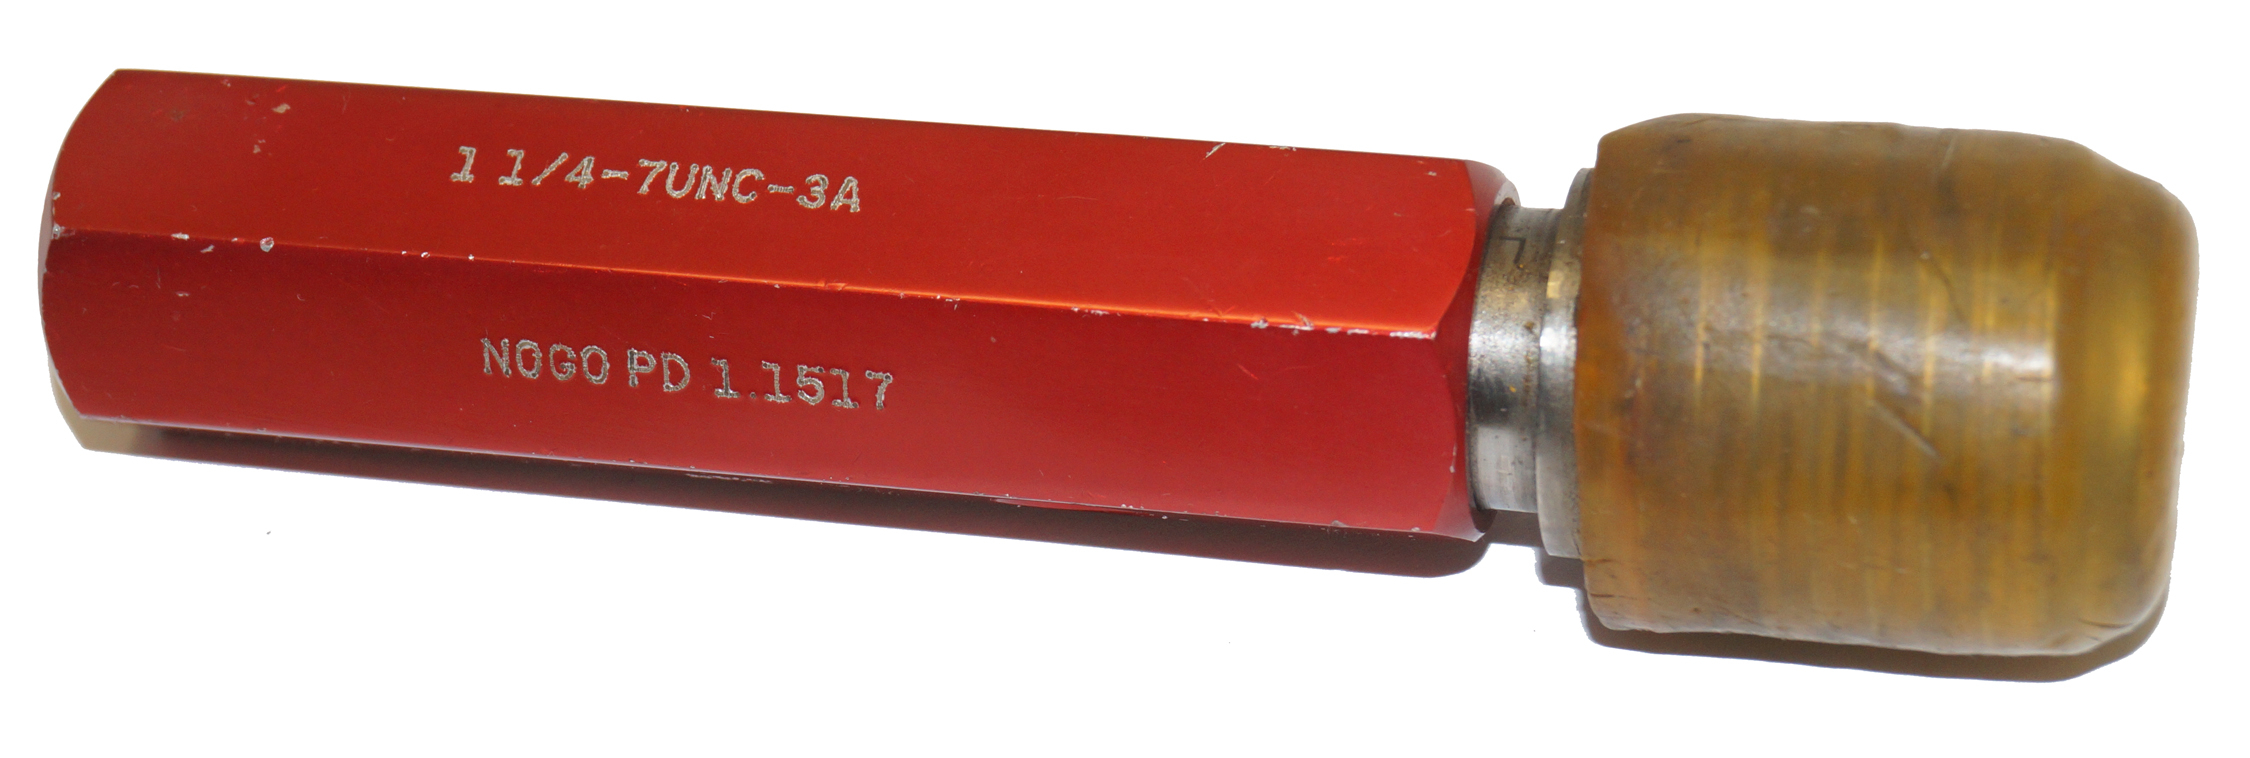 "1-1/4""-7UNC-3A Set Plug Thread Gage NoGo 1.1517"